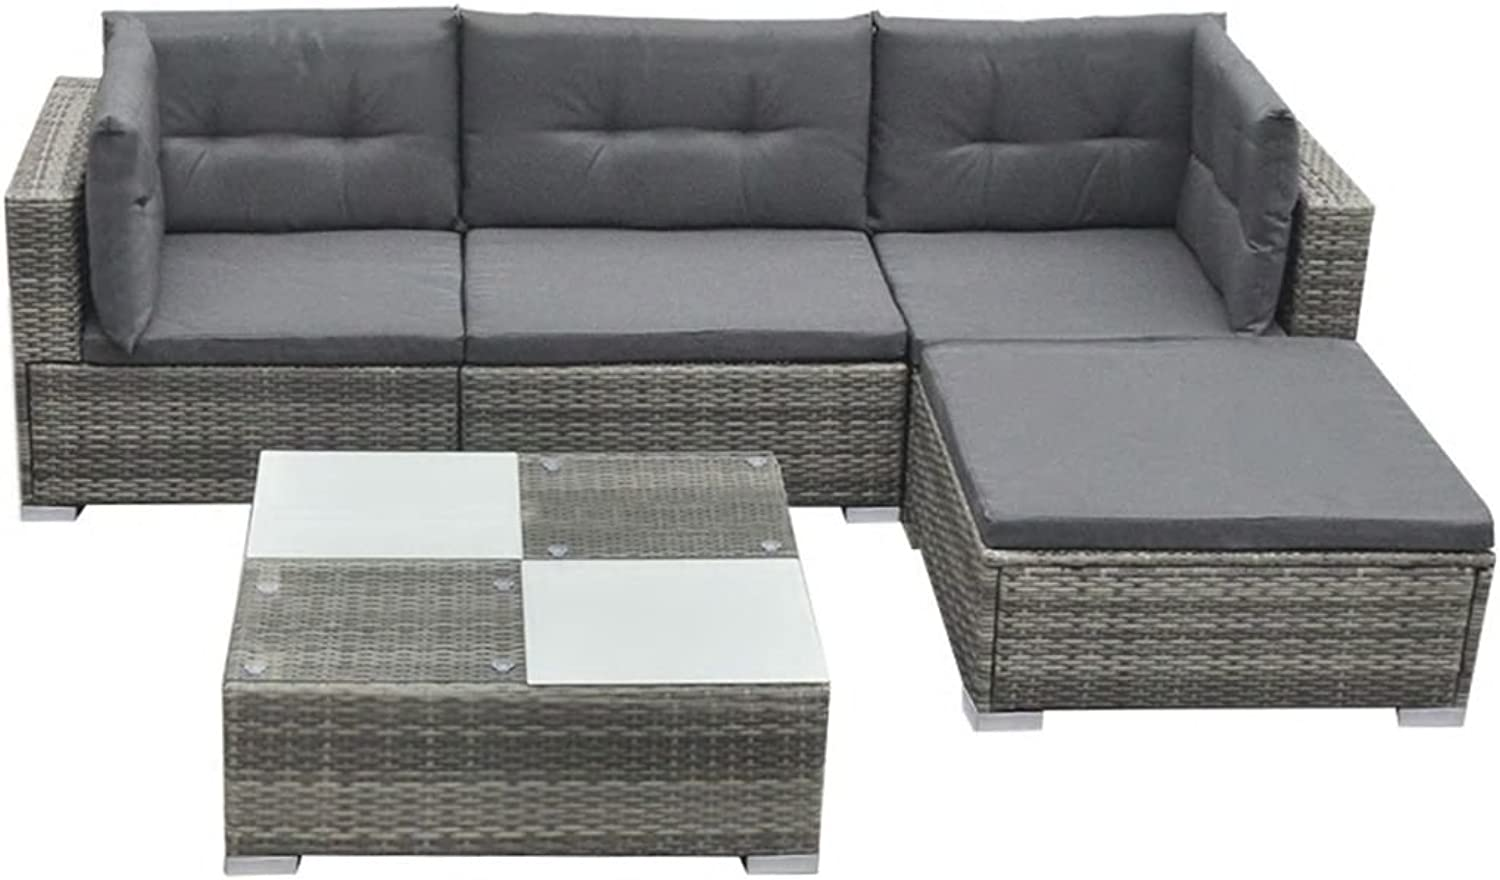 Festnight Garden Lounge Set Patio Safe Set 14 Pcs with Removable Cushions Furniture Set for Family Party and Gathering Poly Rattan Grey